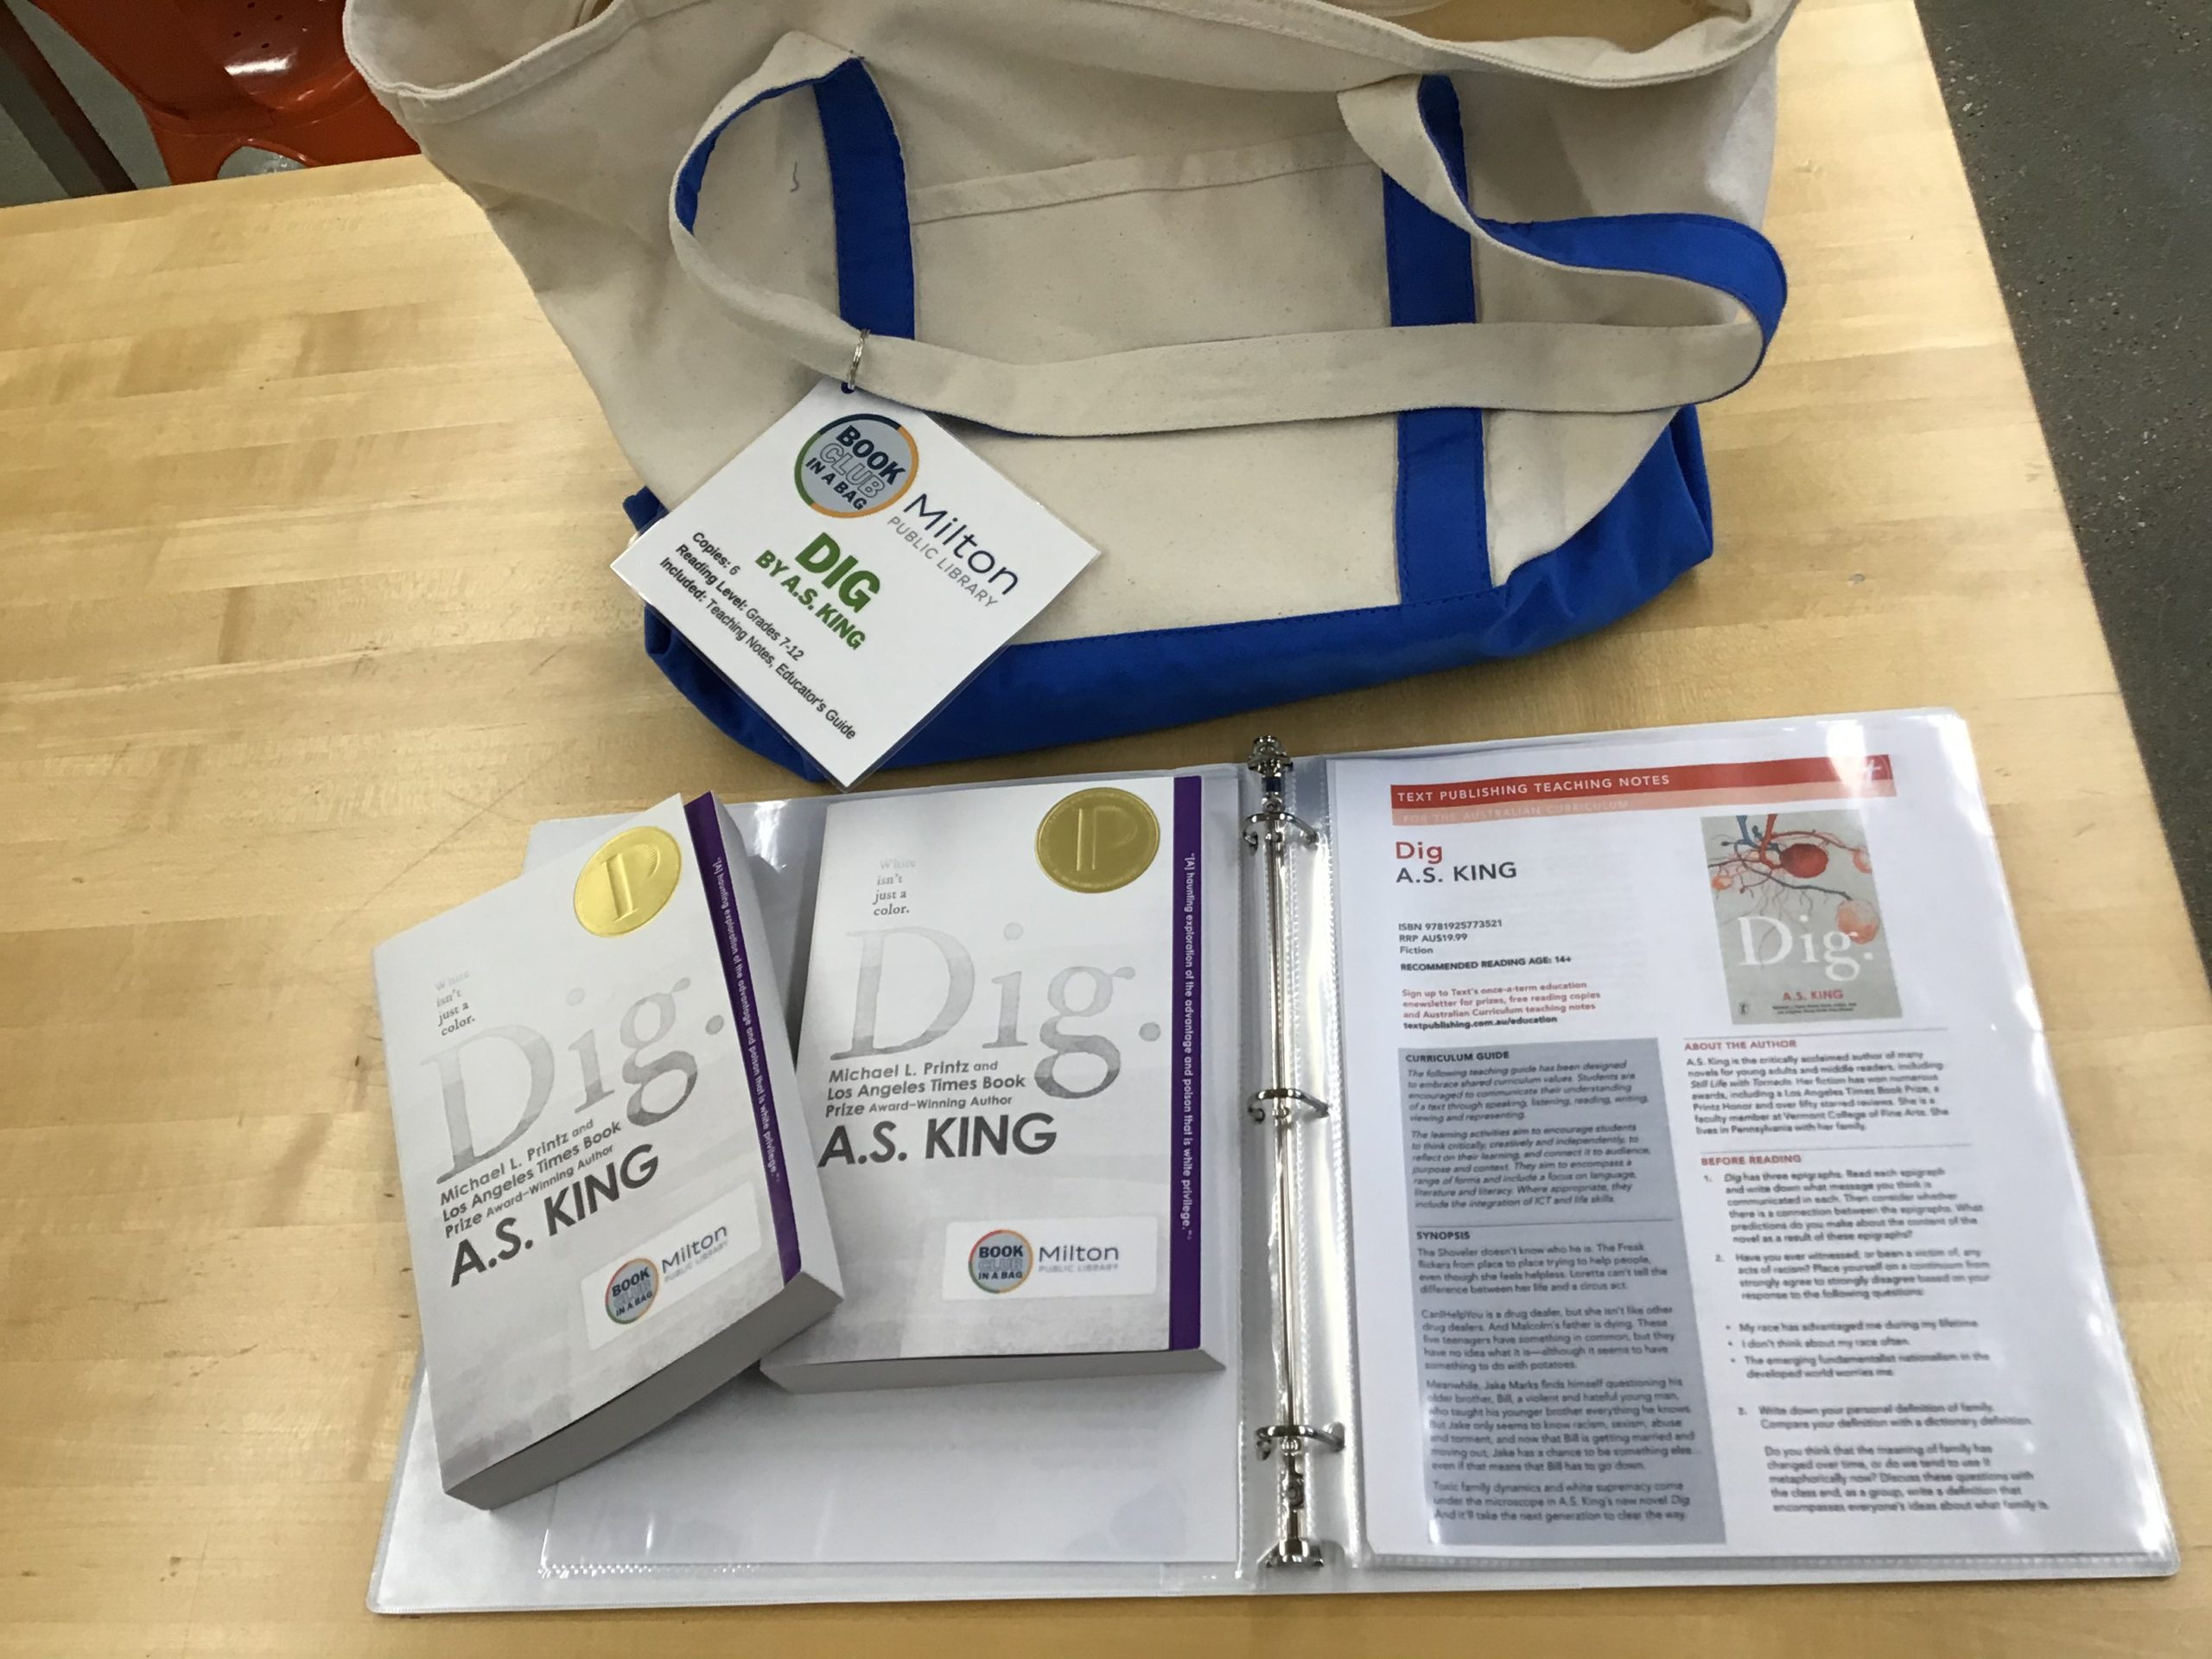 Canvas tote bag with two copies of Dig displayed over the book club kit binder.